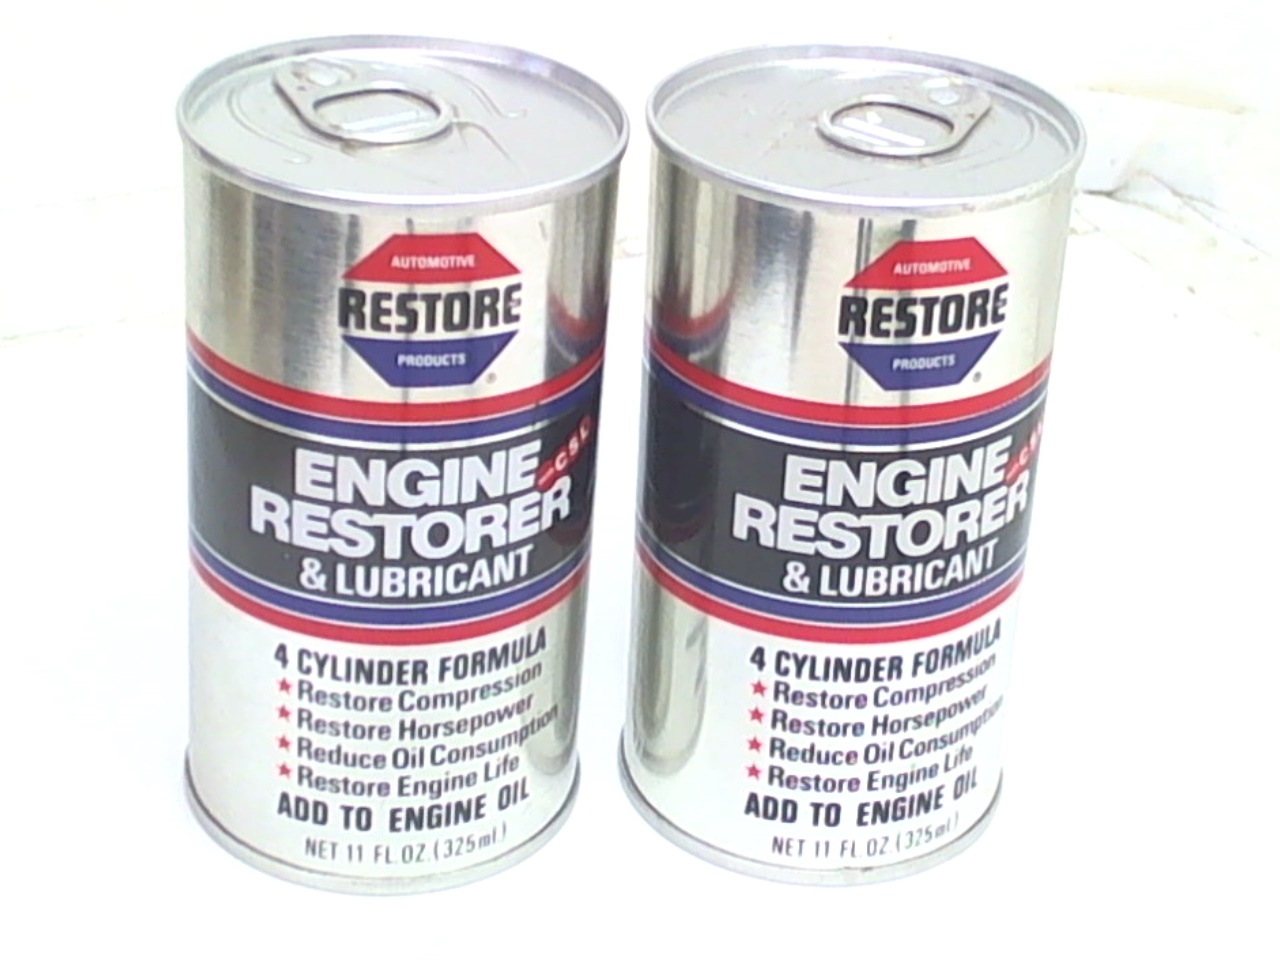 Restore restore restore 4 cylinder formula engine for Can you mix regular motor oil with synthetic